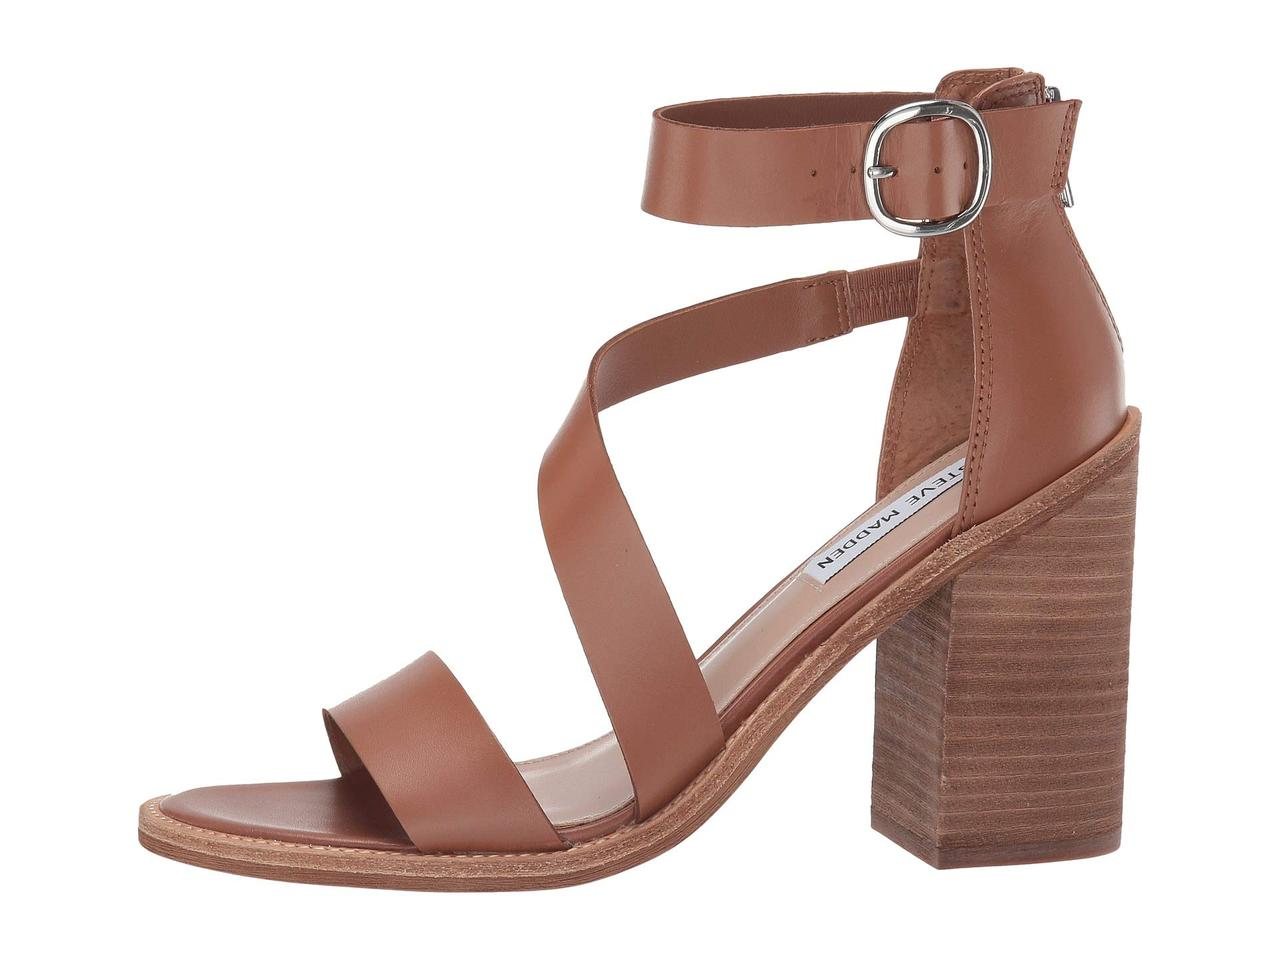 bab29b0fd9 ... Туфли на каблуке (Оригинал) Steve Madden Collins Heeled Sandals Cognac  Leather, ...